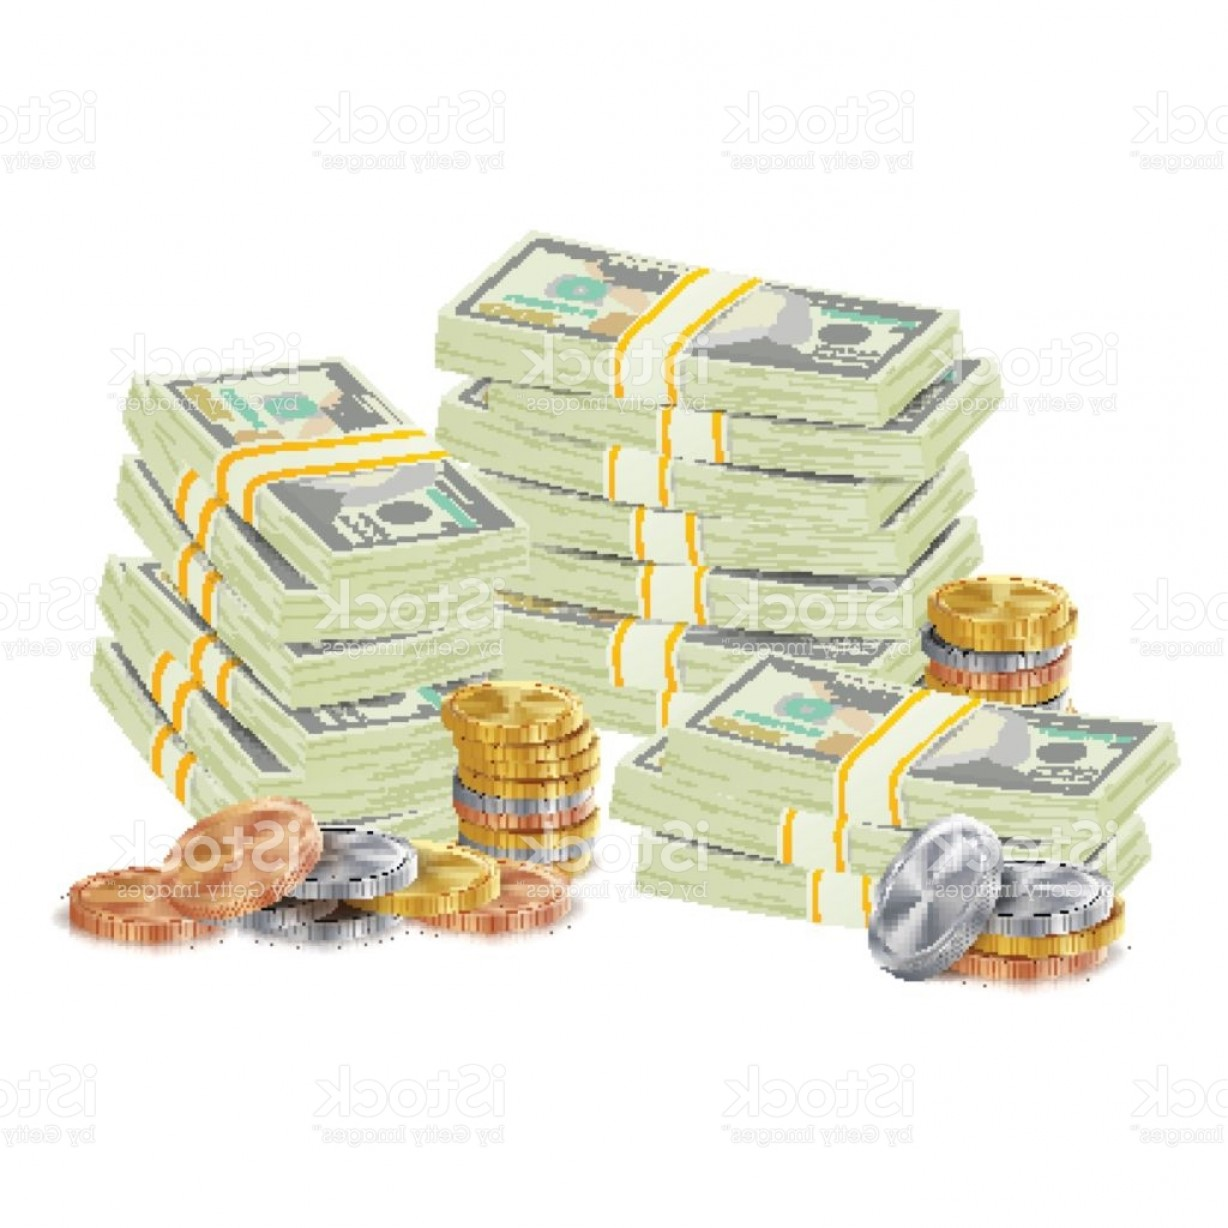 Hundreds Of Money Stacks Vector: Hundreds Dollars Vector Packing In Bundles Of Bank Notes Bills Gold Coins Cartoon Gm